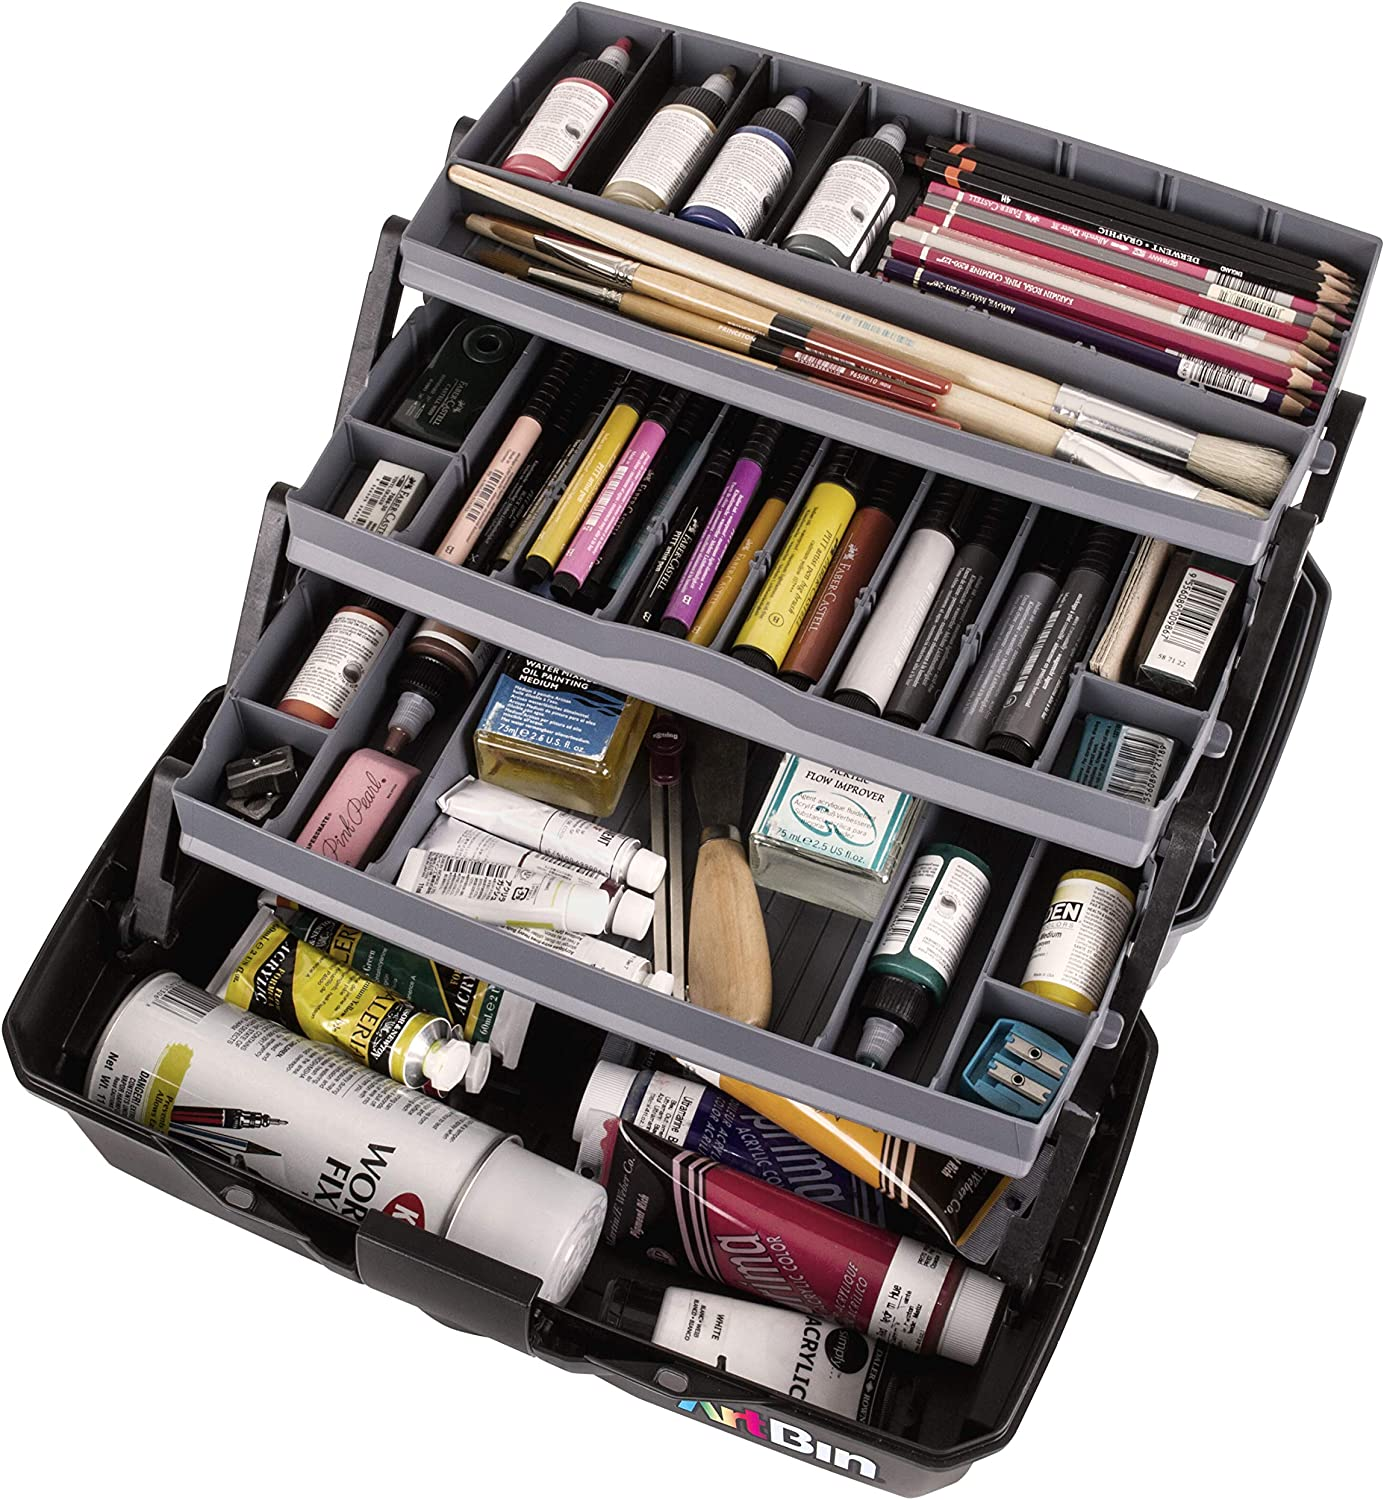 7.88 x 13 x 6.5 inches Portable Art /& Craft Organizer with Lift-Up Tray Plastic Storage Case Gray//Black Product Dimensions